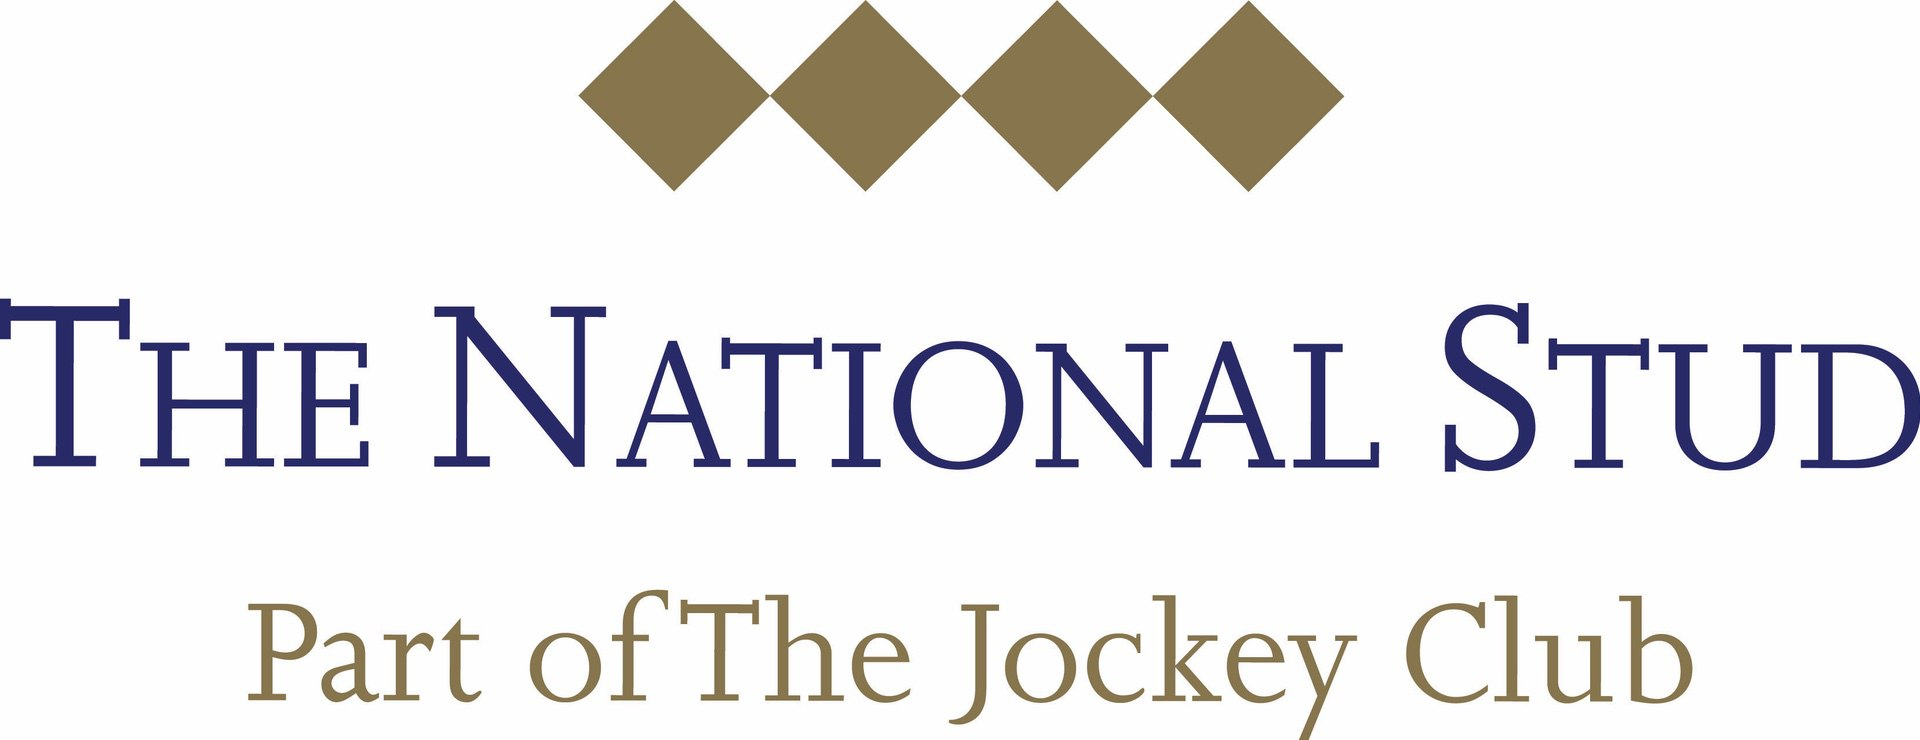 The National Stud - Part of the Jocky Club